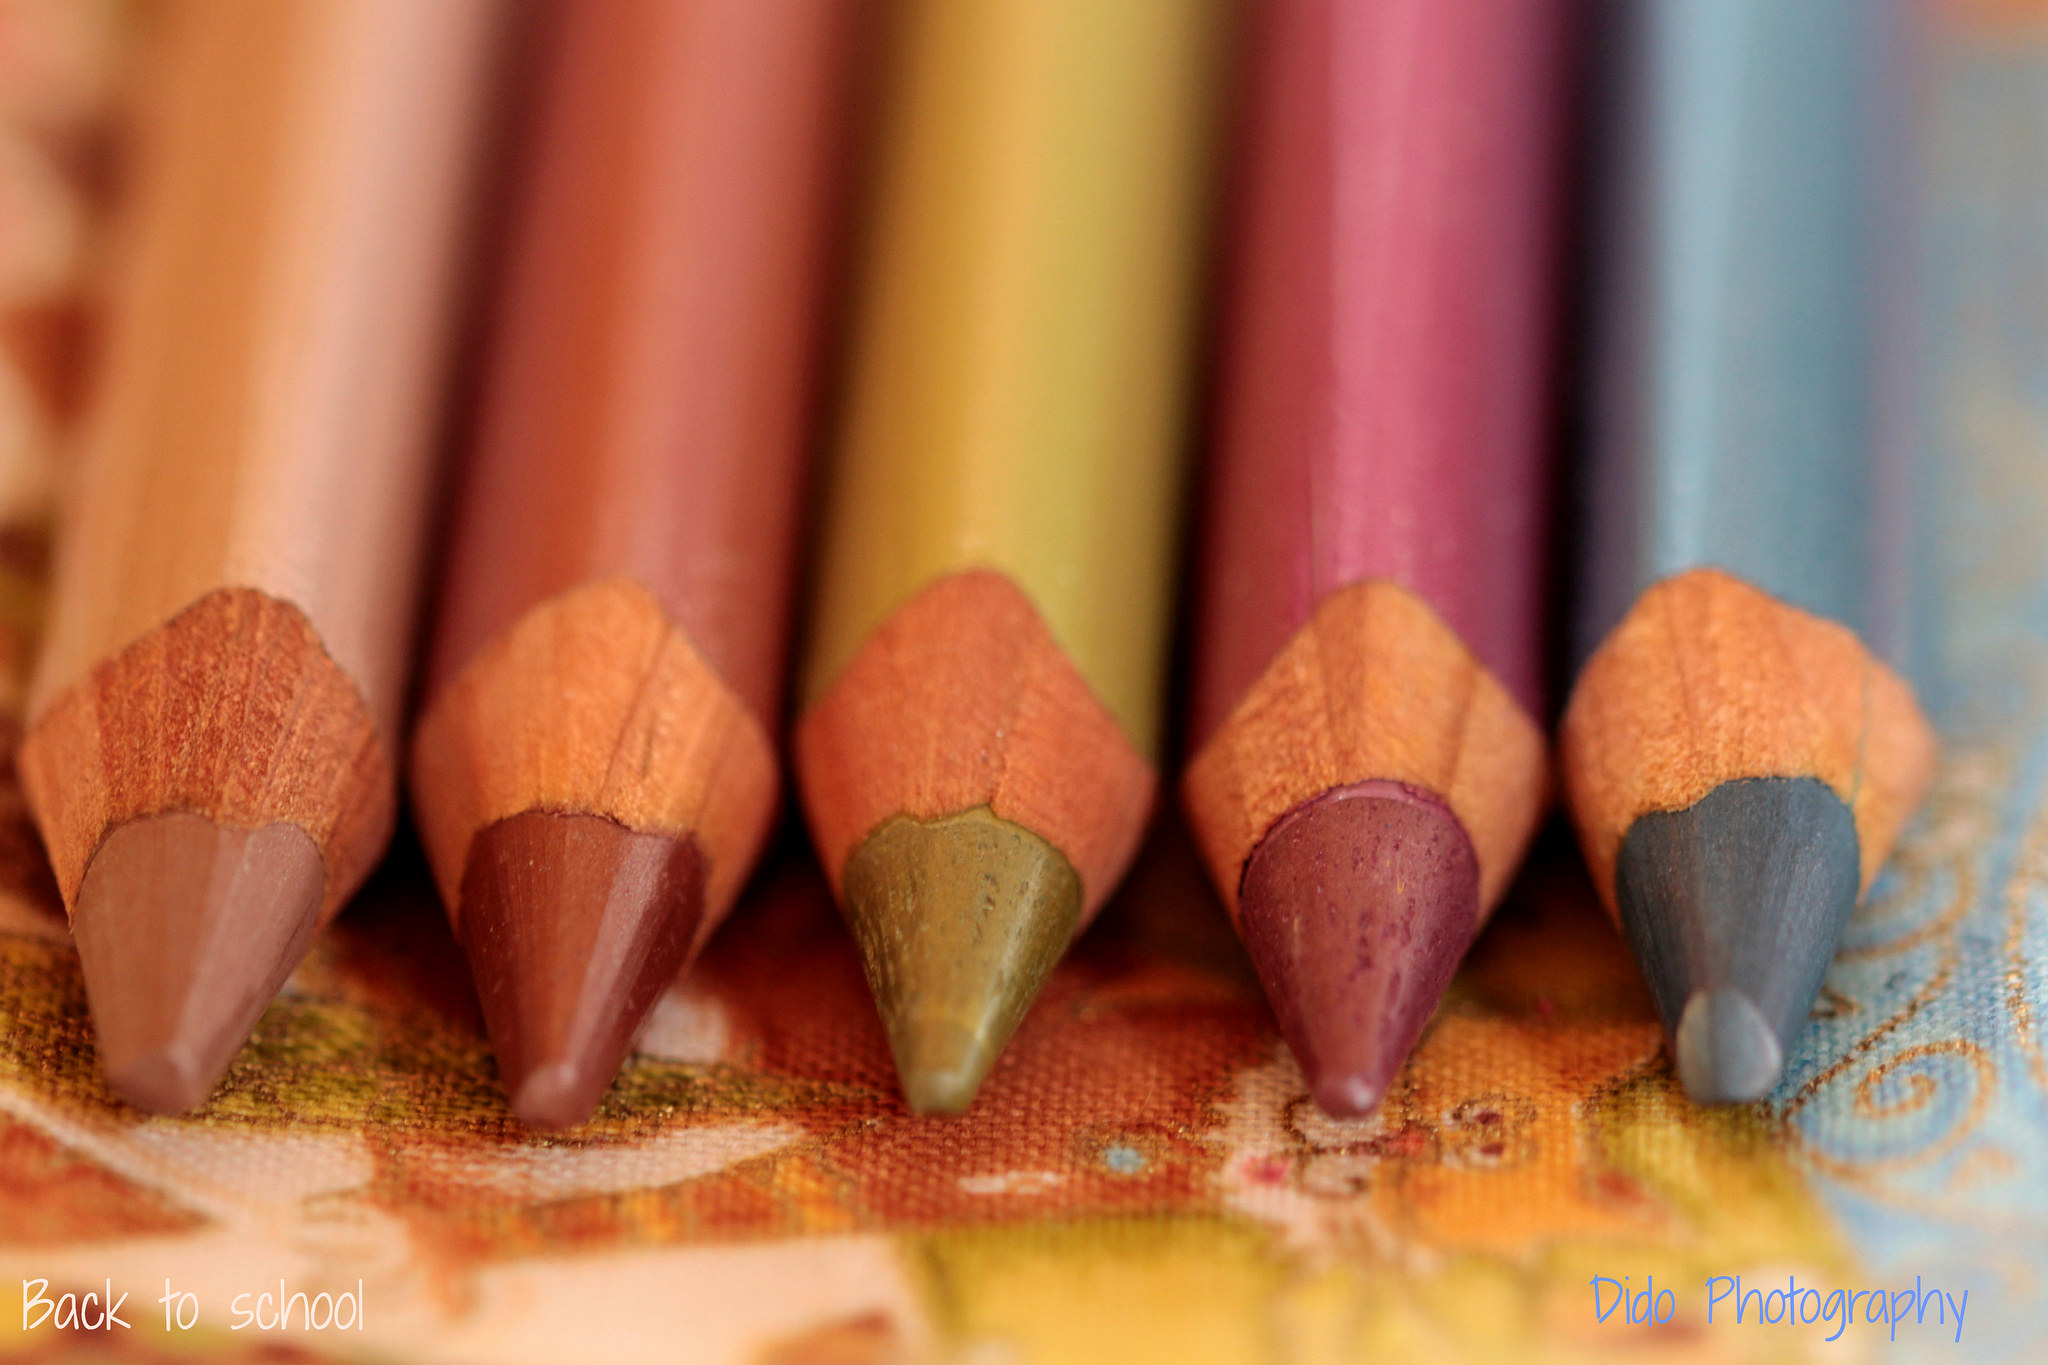 Back To School for Macro Mondays by Blandine L on flickr